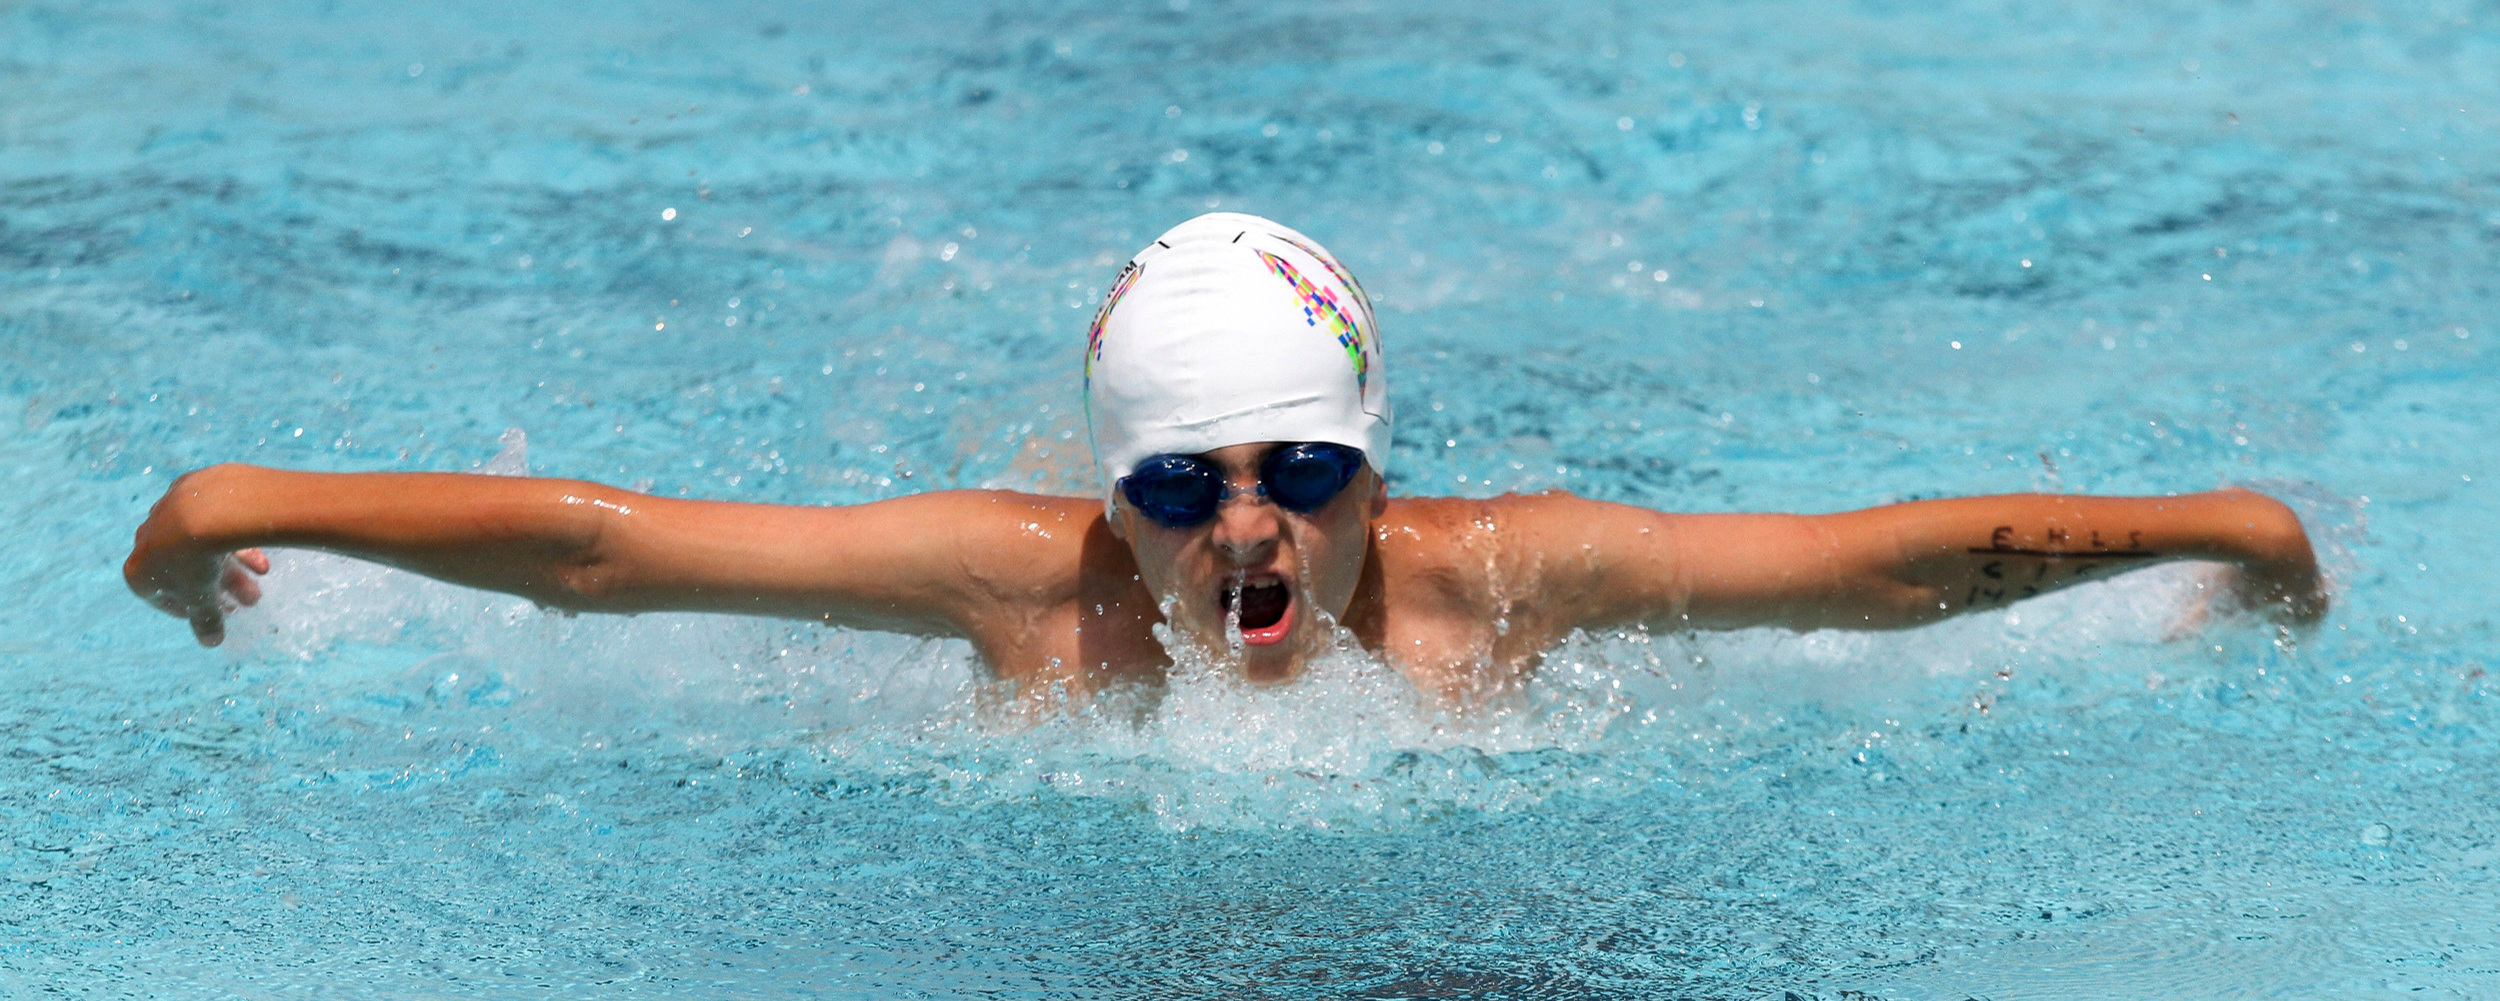 Tulio Figarola competes in the 8 and under 25 yard butterfly during the Stamm Family Invitational Swim Meet Sponsored by Vicksburg Swim Association Friday at the Vicksburg City Pool.  The Stamm Family Invitation Swim Meet is in Memory of Alan Ebersole and will continue all weekend. (Courtland Wells/The Vicksburg Post)